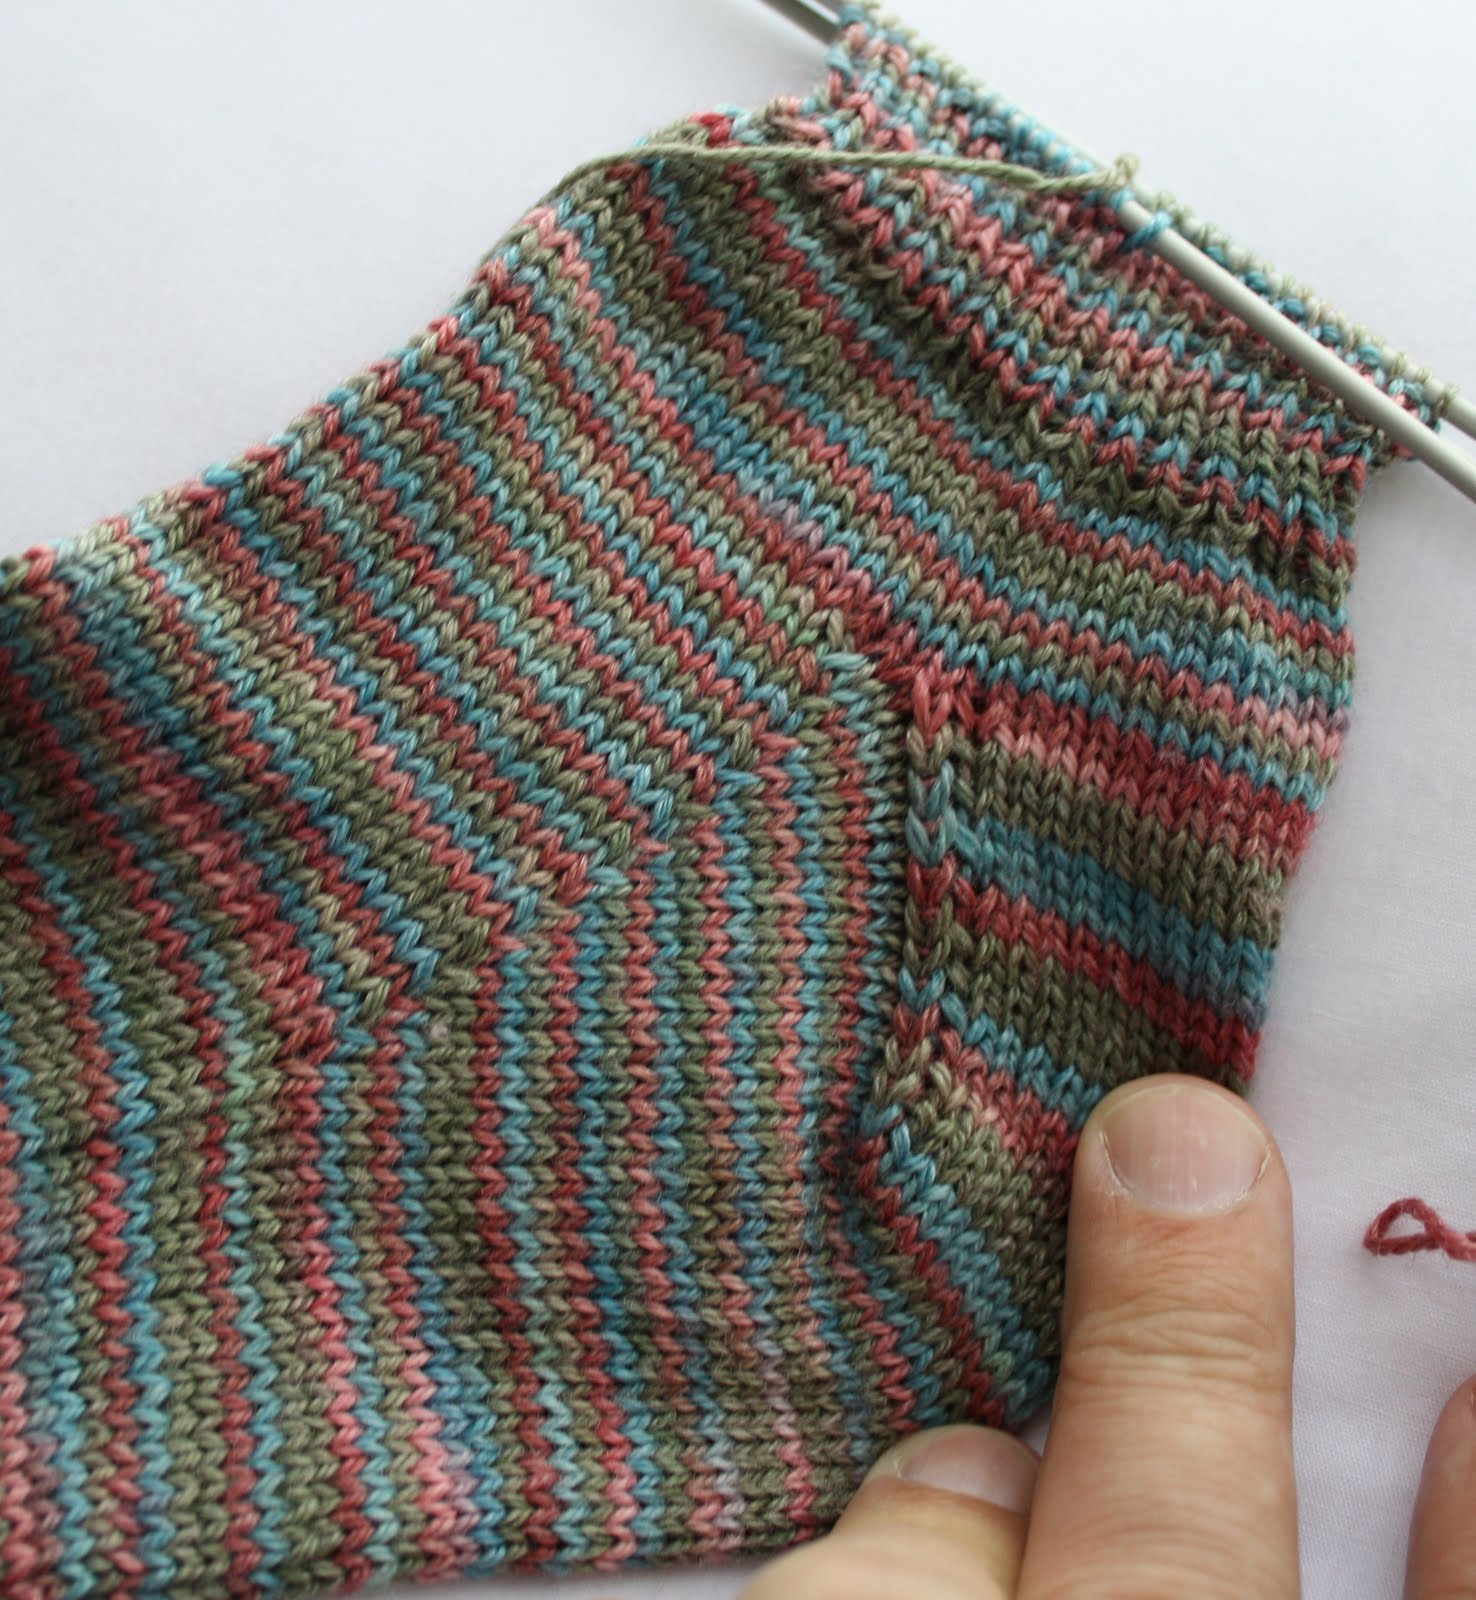 Knitting Picking Up Heel Stitches : QueerJoes Knitting Blog